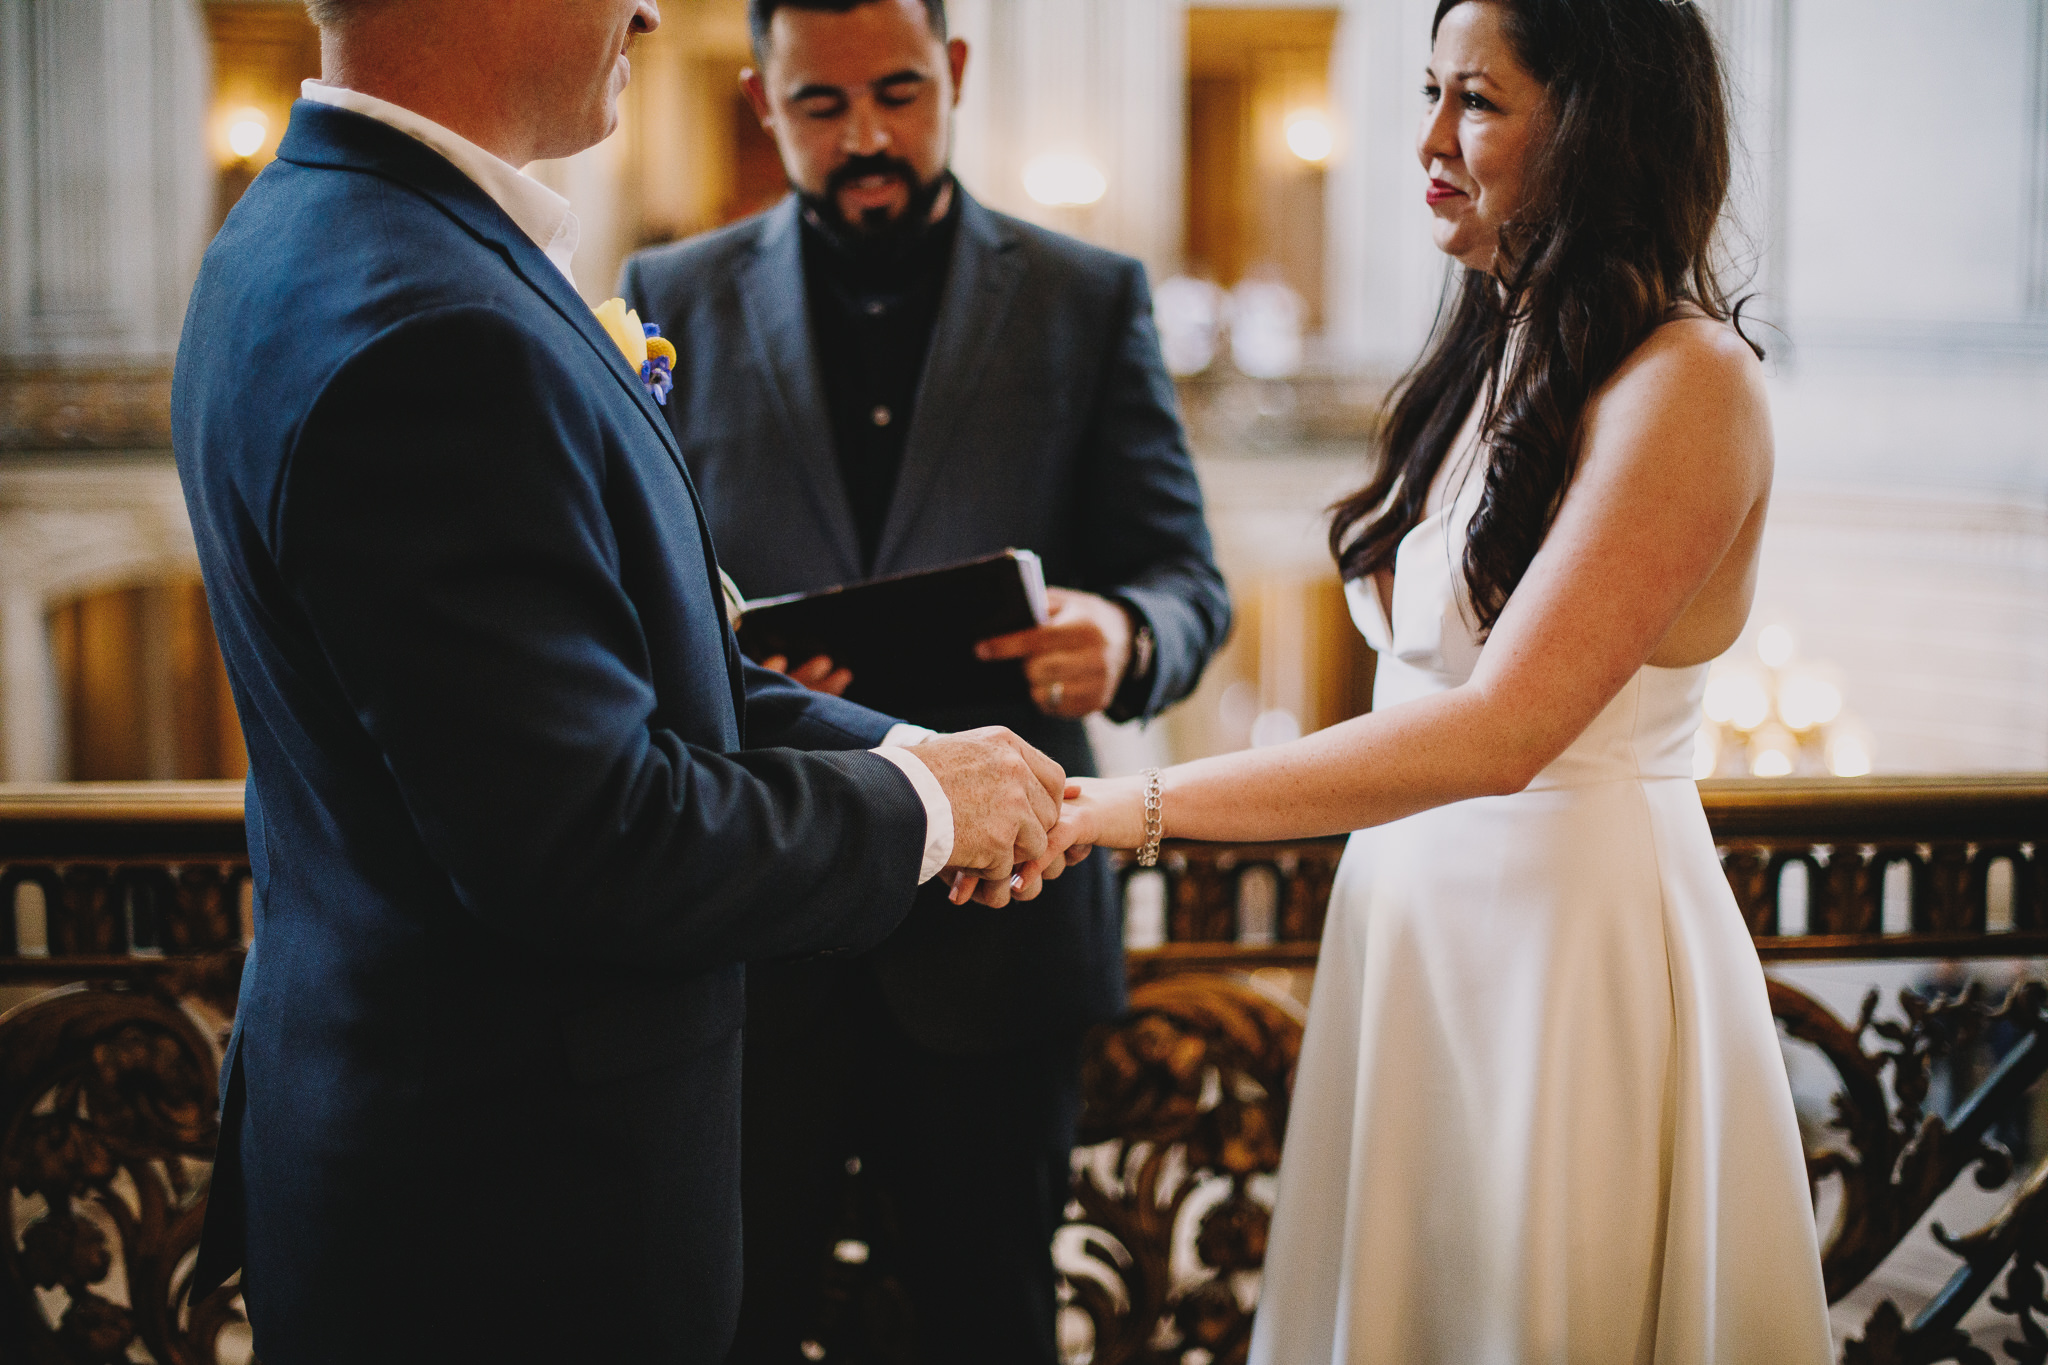 Archer Inspired Photography SF City Hall Elopement Wedding Lifestyle Documentary Affordable Photographer-120.jpg